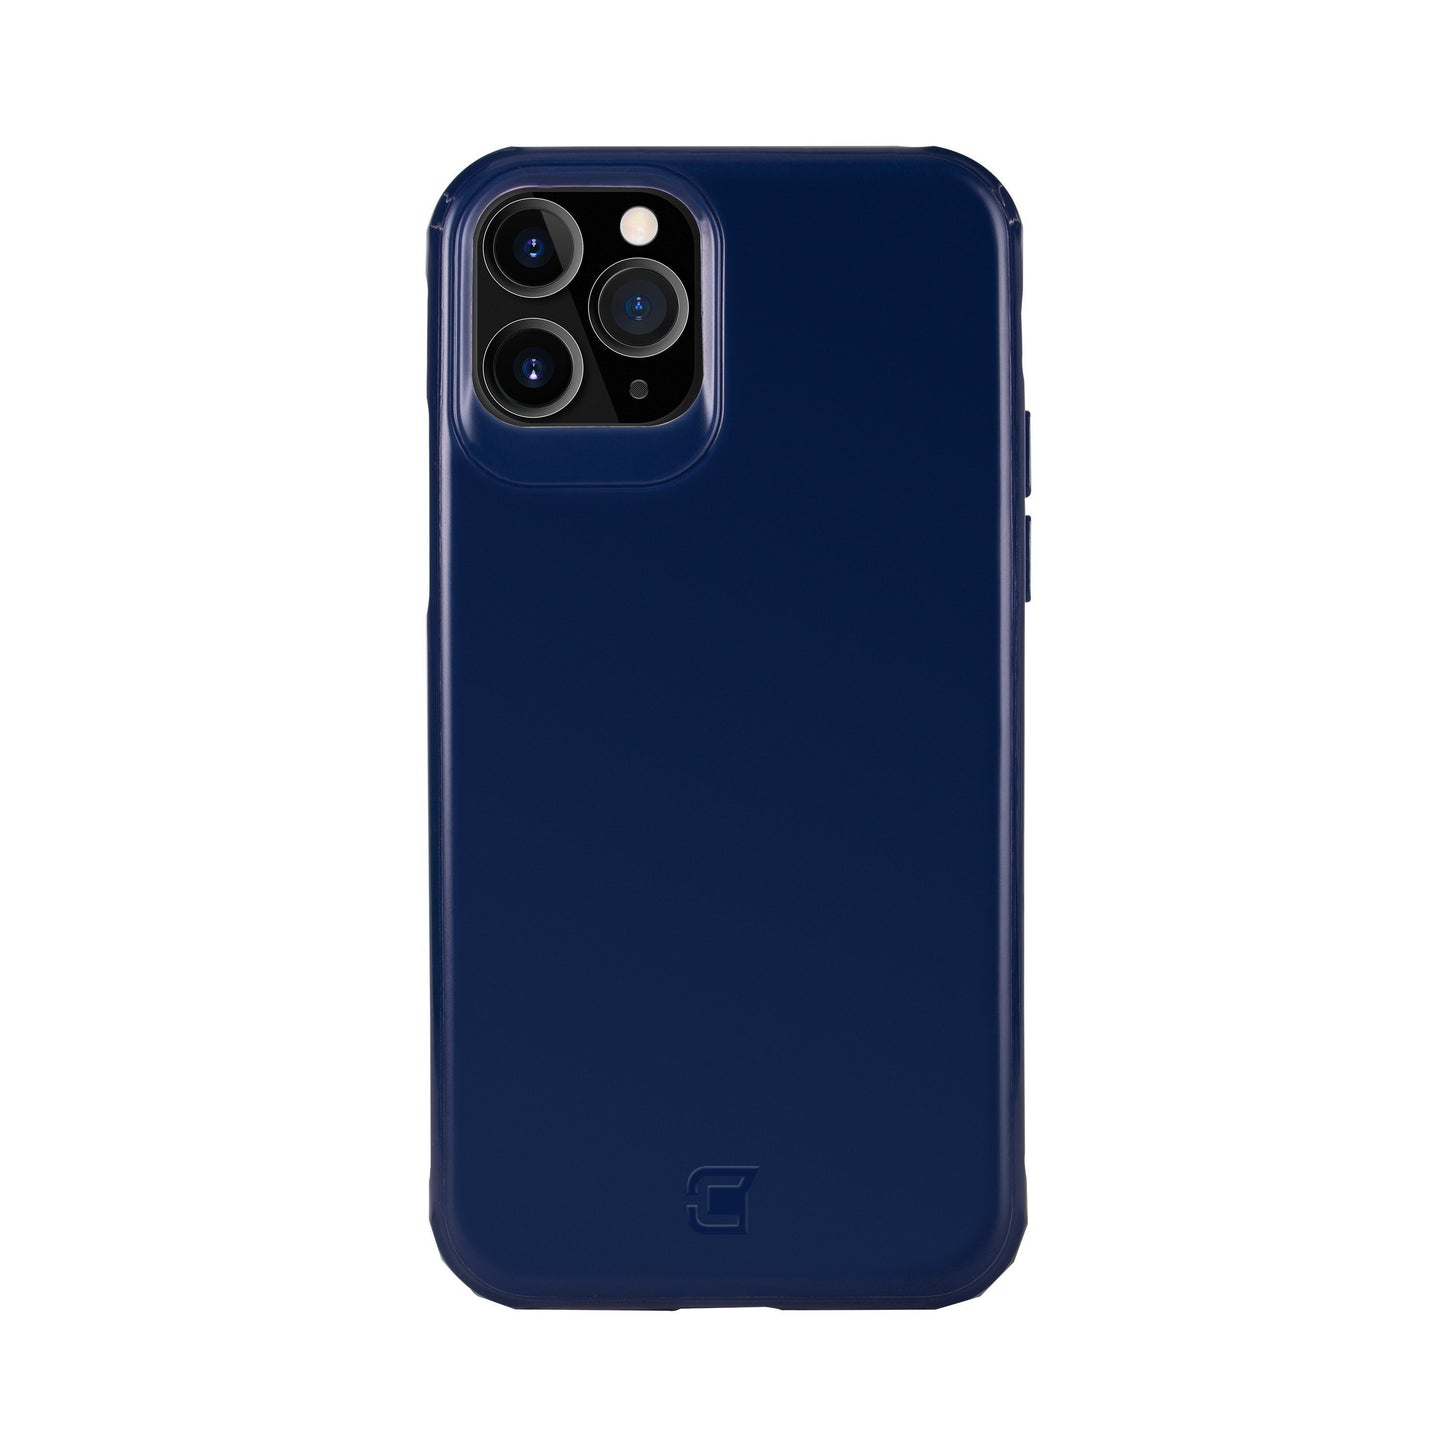 iPhone 11 Pro - Magneto Car Mount Holder Case - Navy Blue